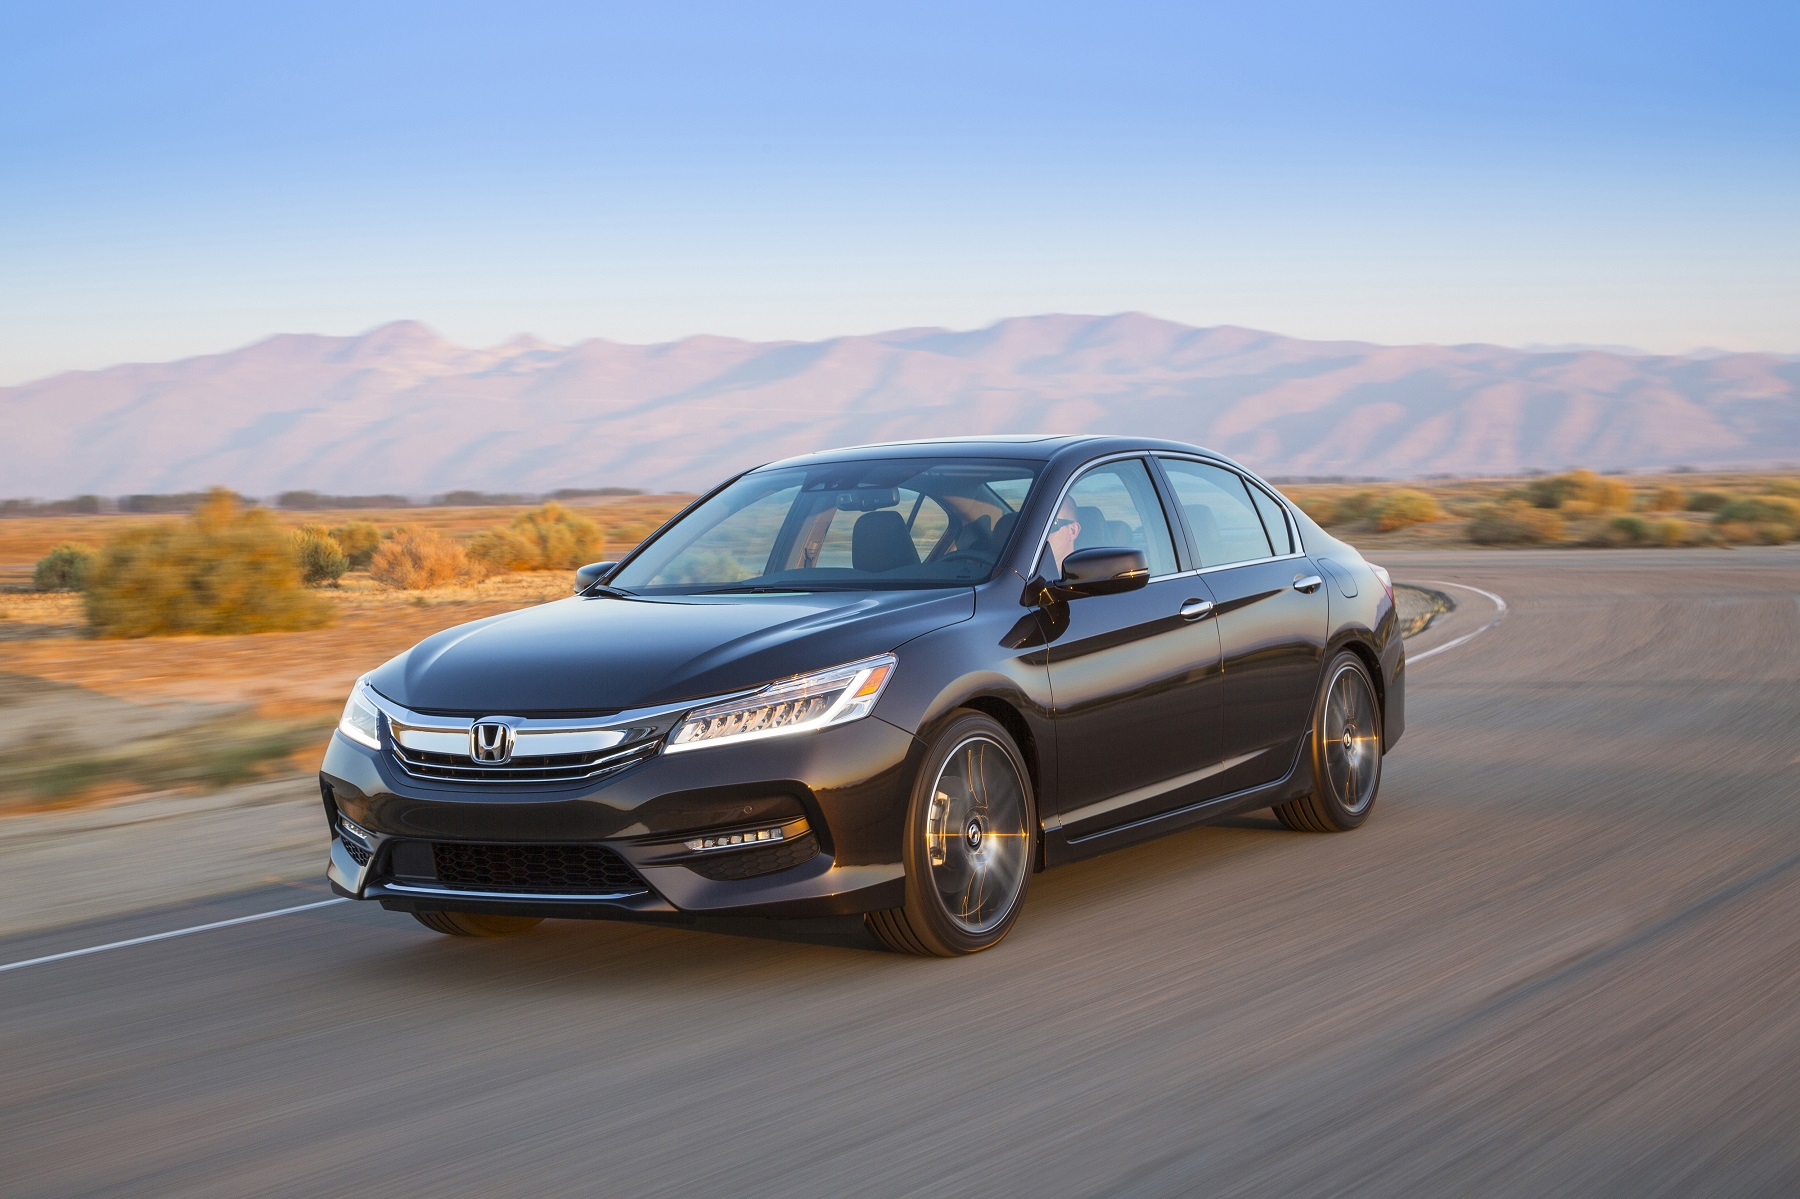 Manufacturer photo: The 2016 Honda Accord gets a new face that has a more premium look